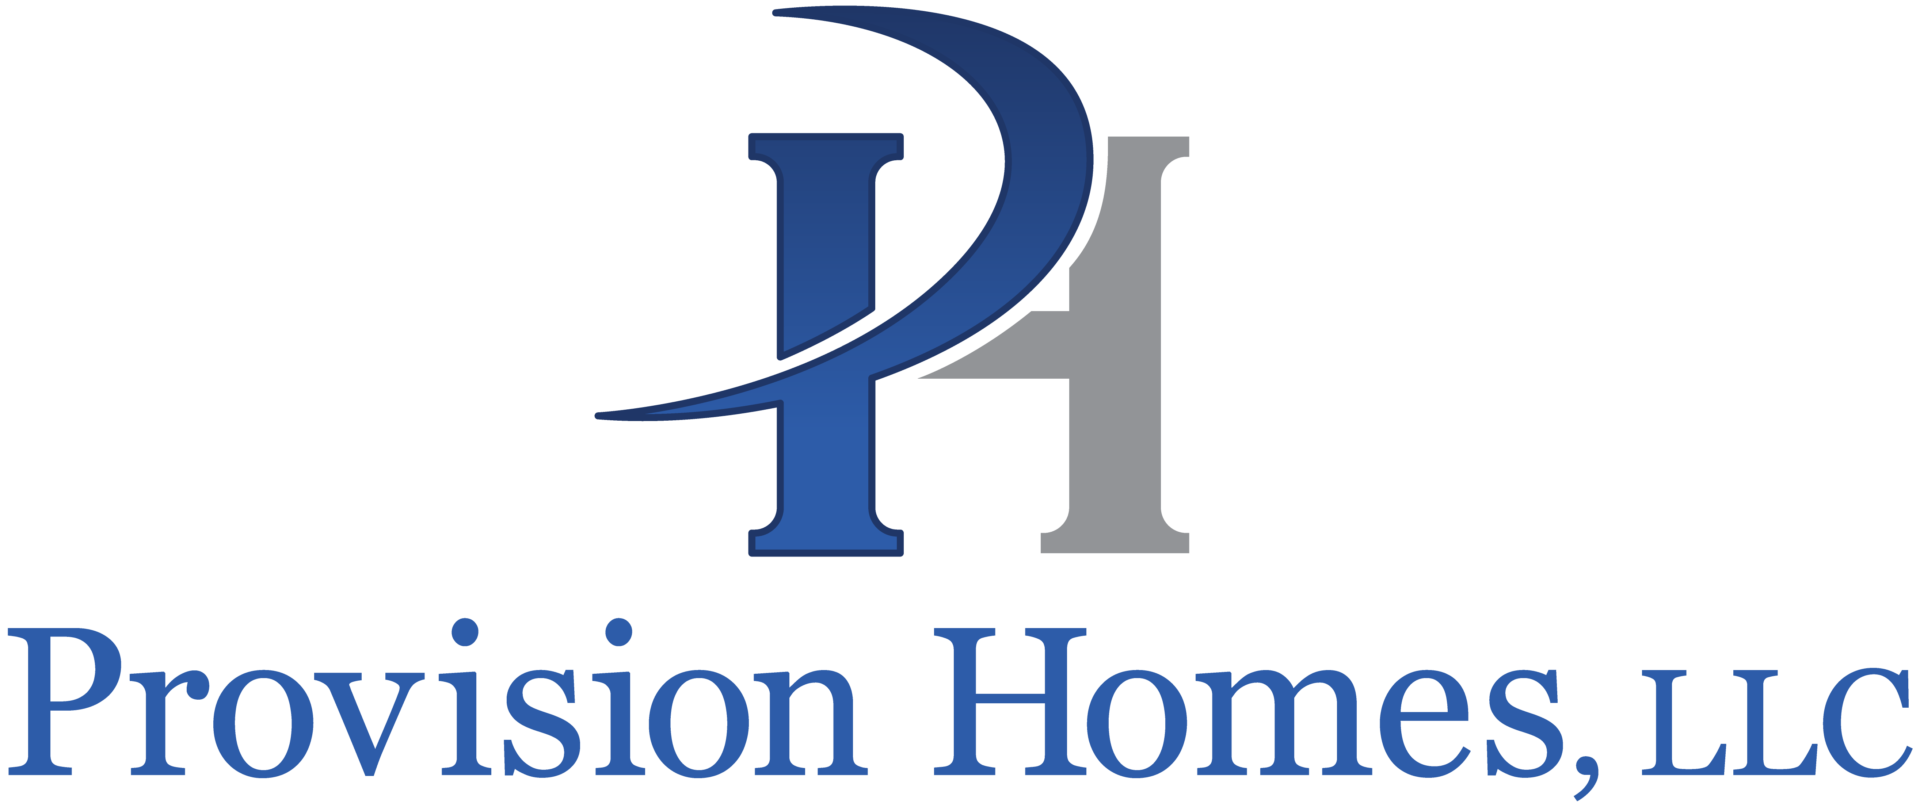 Provision Homes, LLC  logo